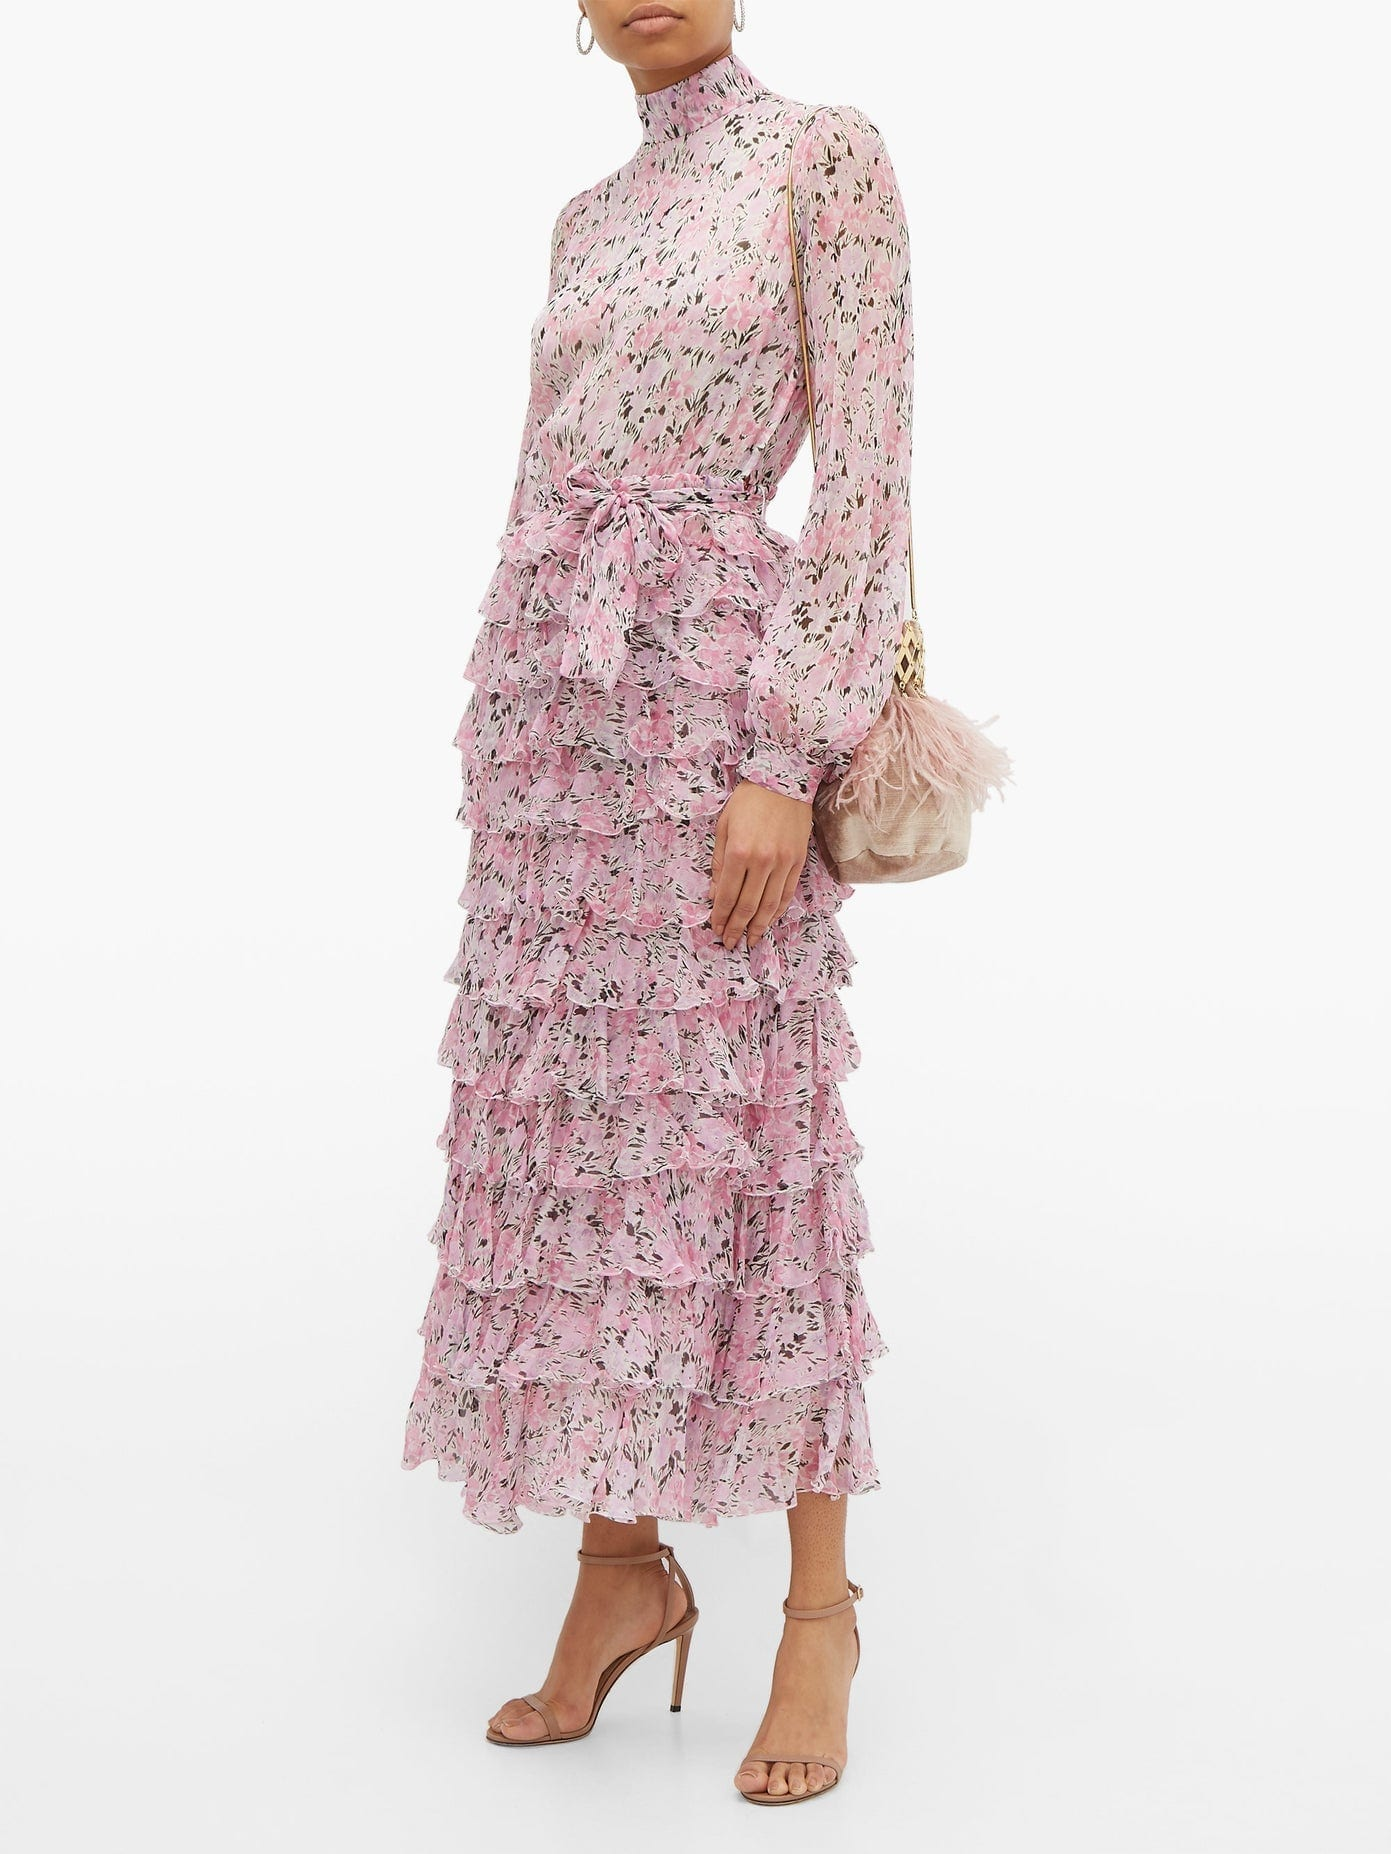 GIAMBATTISTA VALLI Tiered Floral-print Silk-georgette Dress